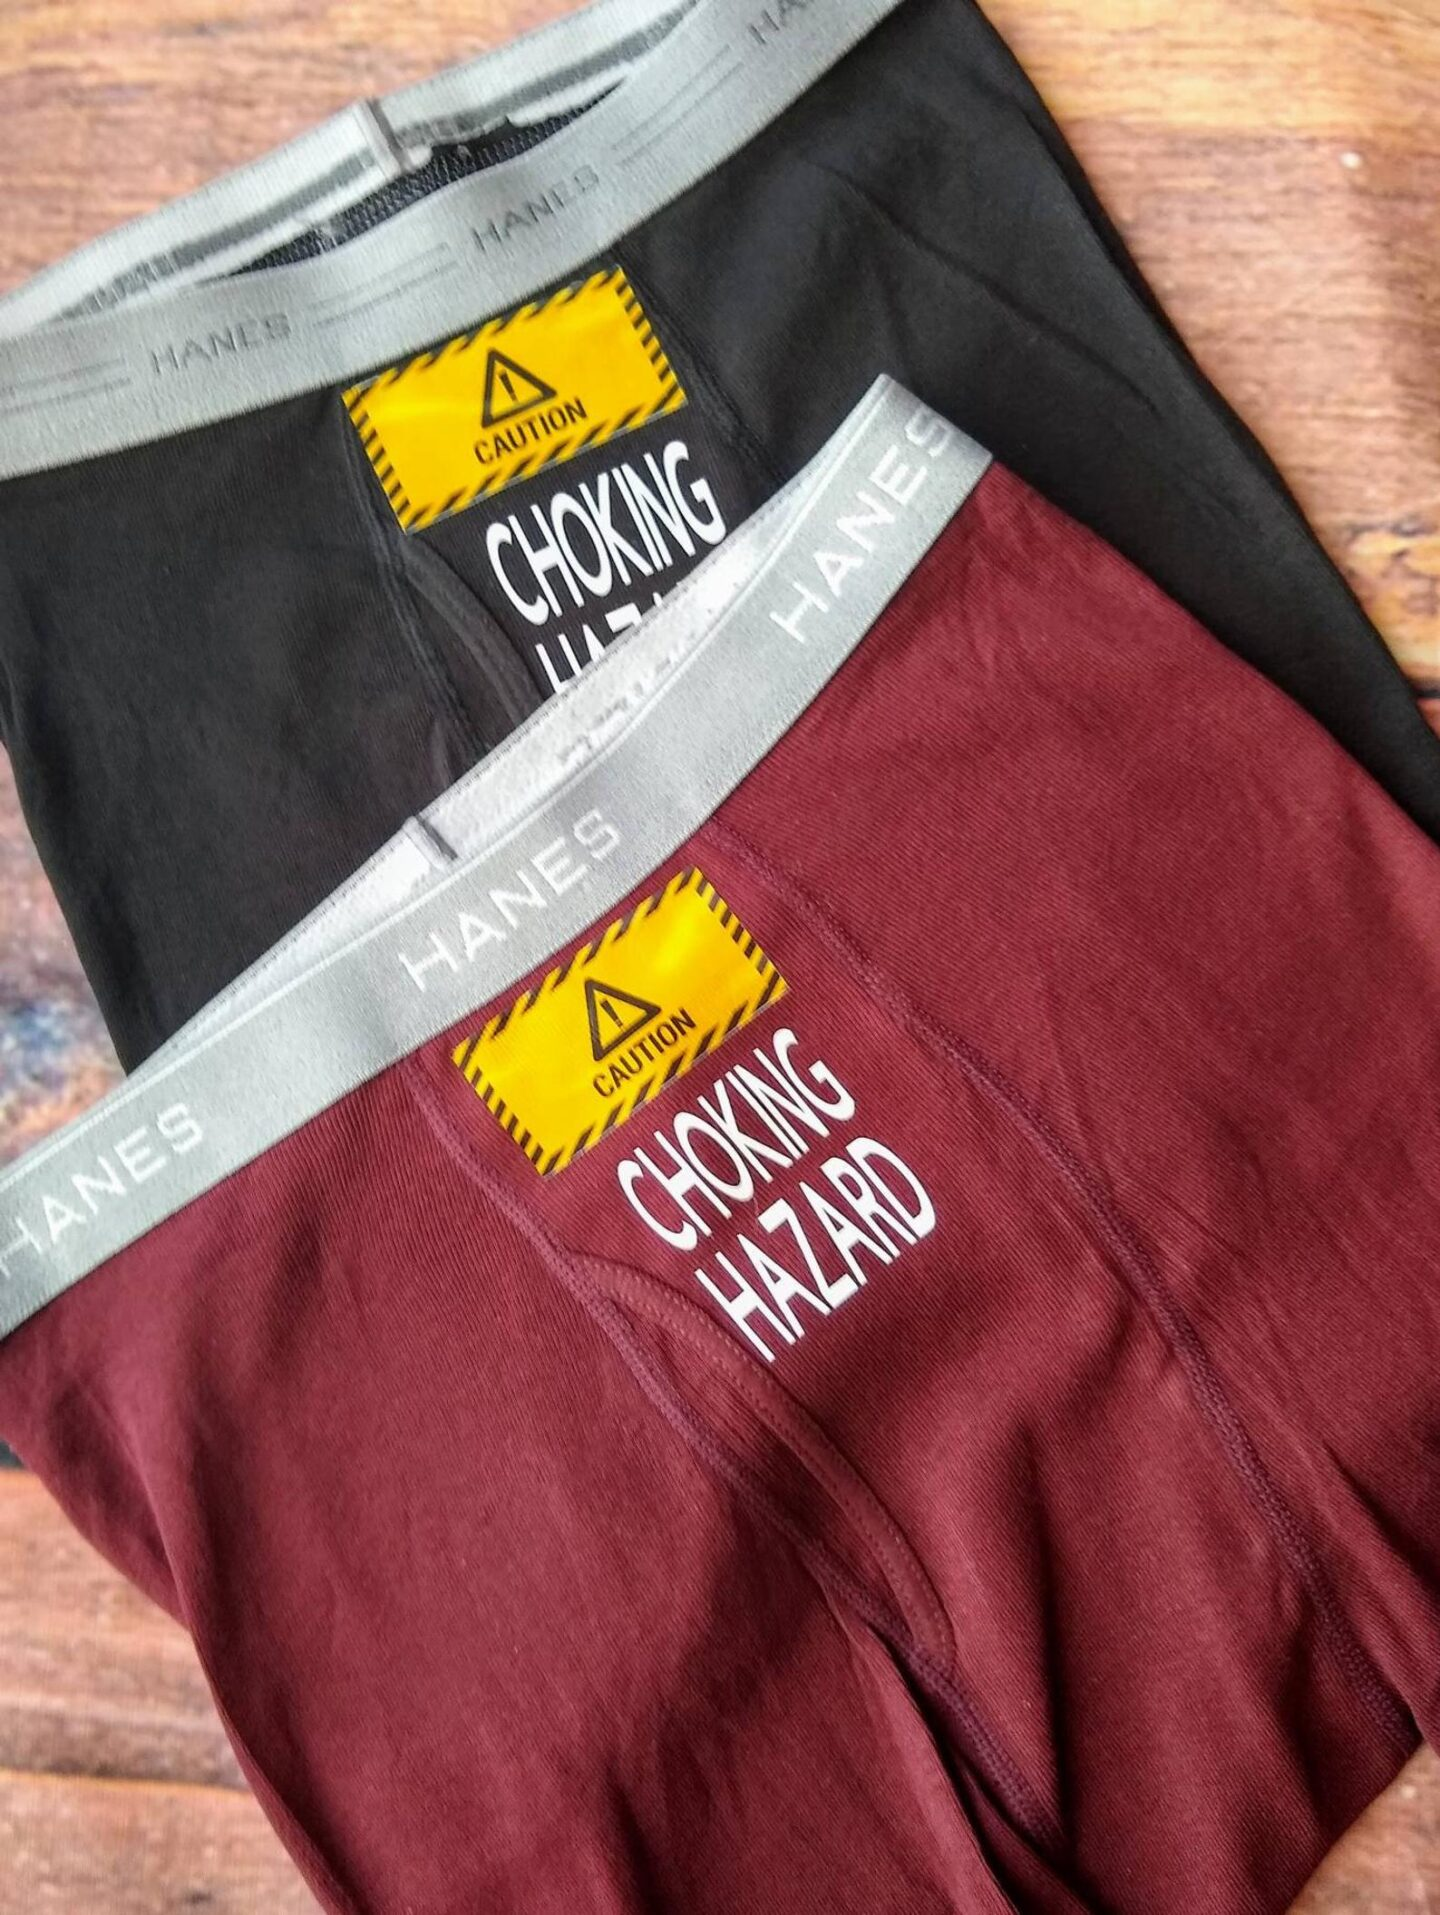 Custom boxers perfect for a naughty valentines day gift idea for him